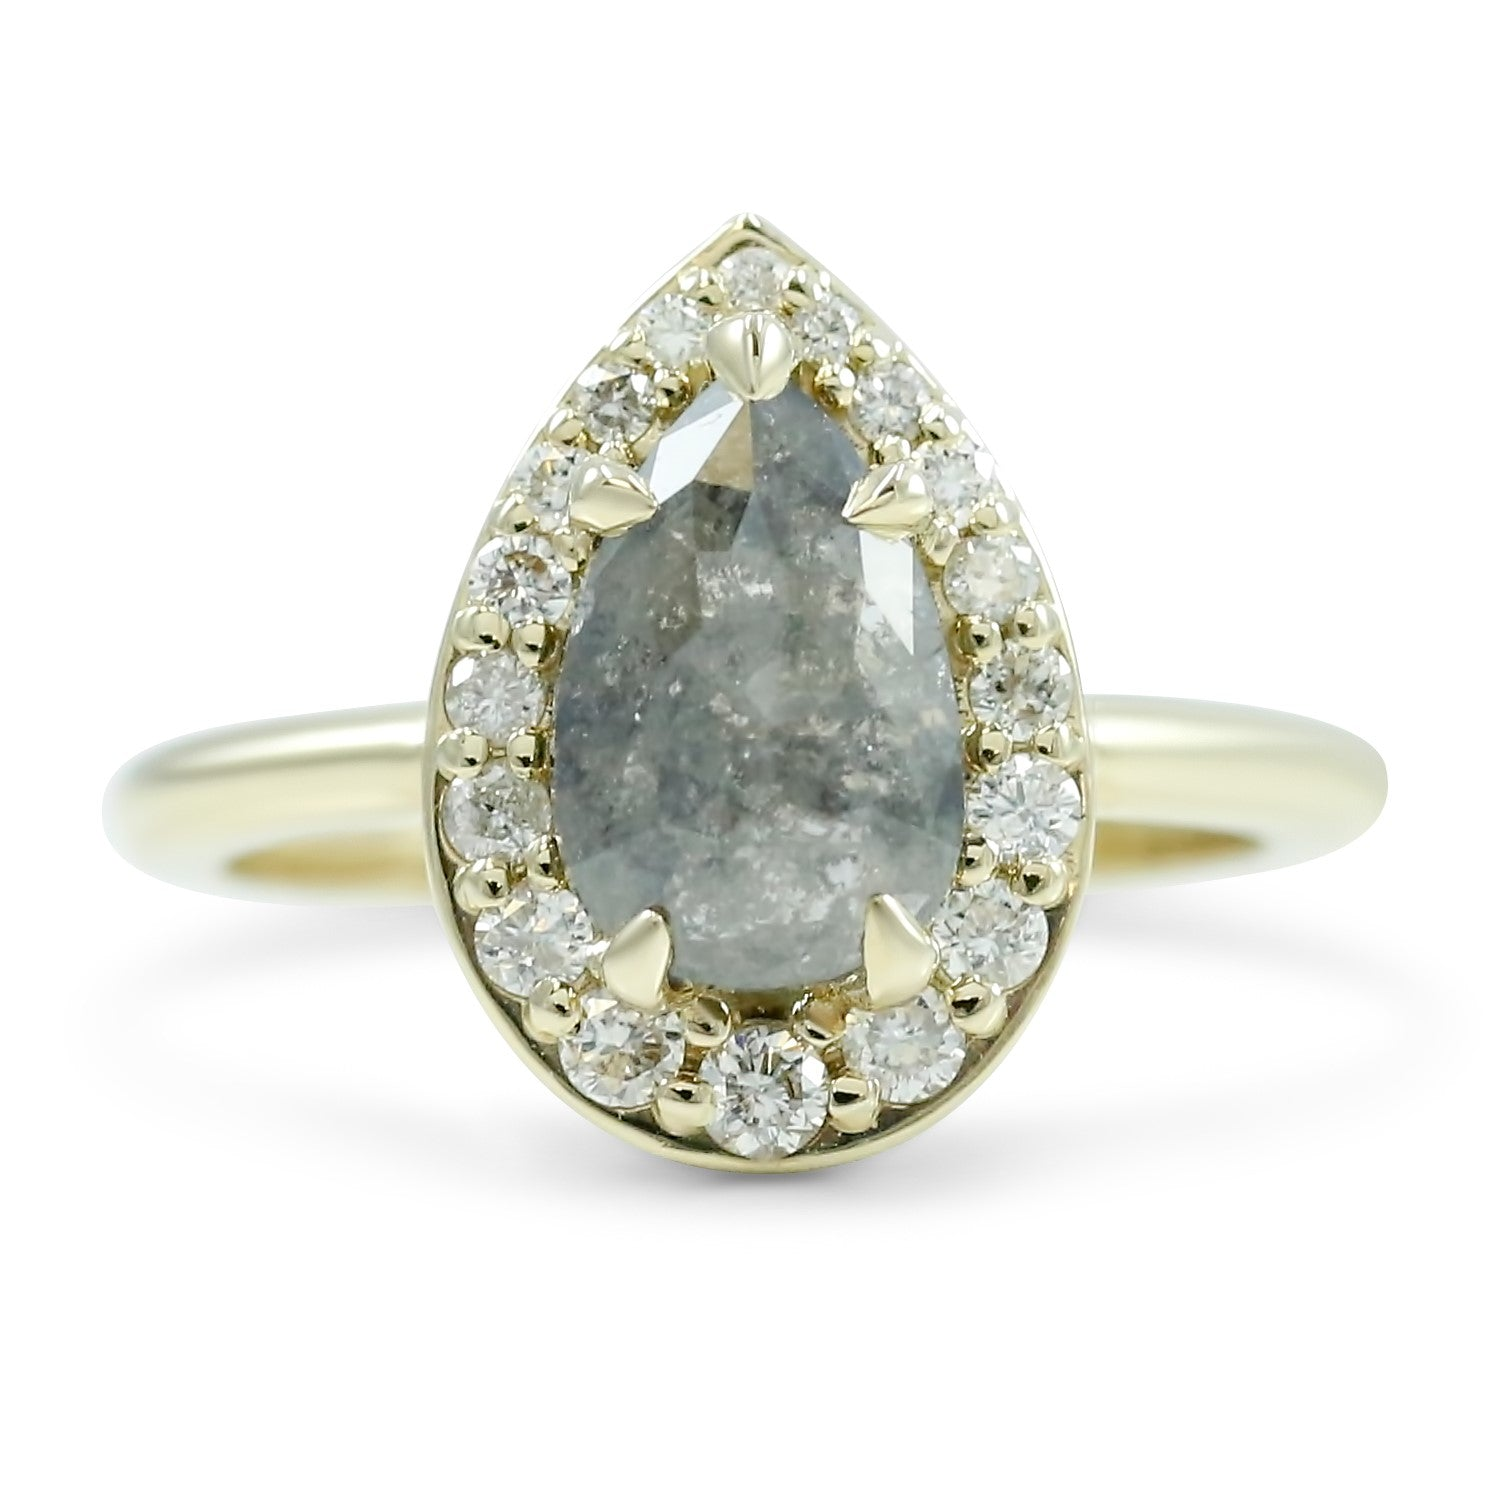 gray rose cut diamond engagement ring with white diamond halo 14k yellow gold